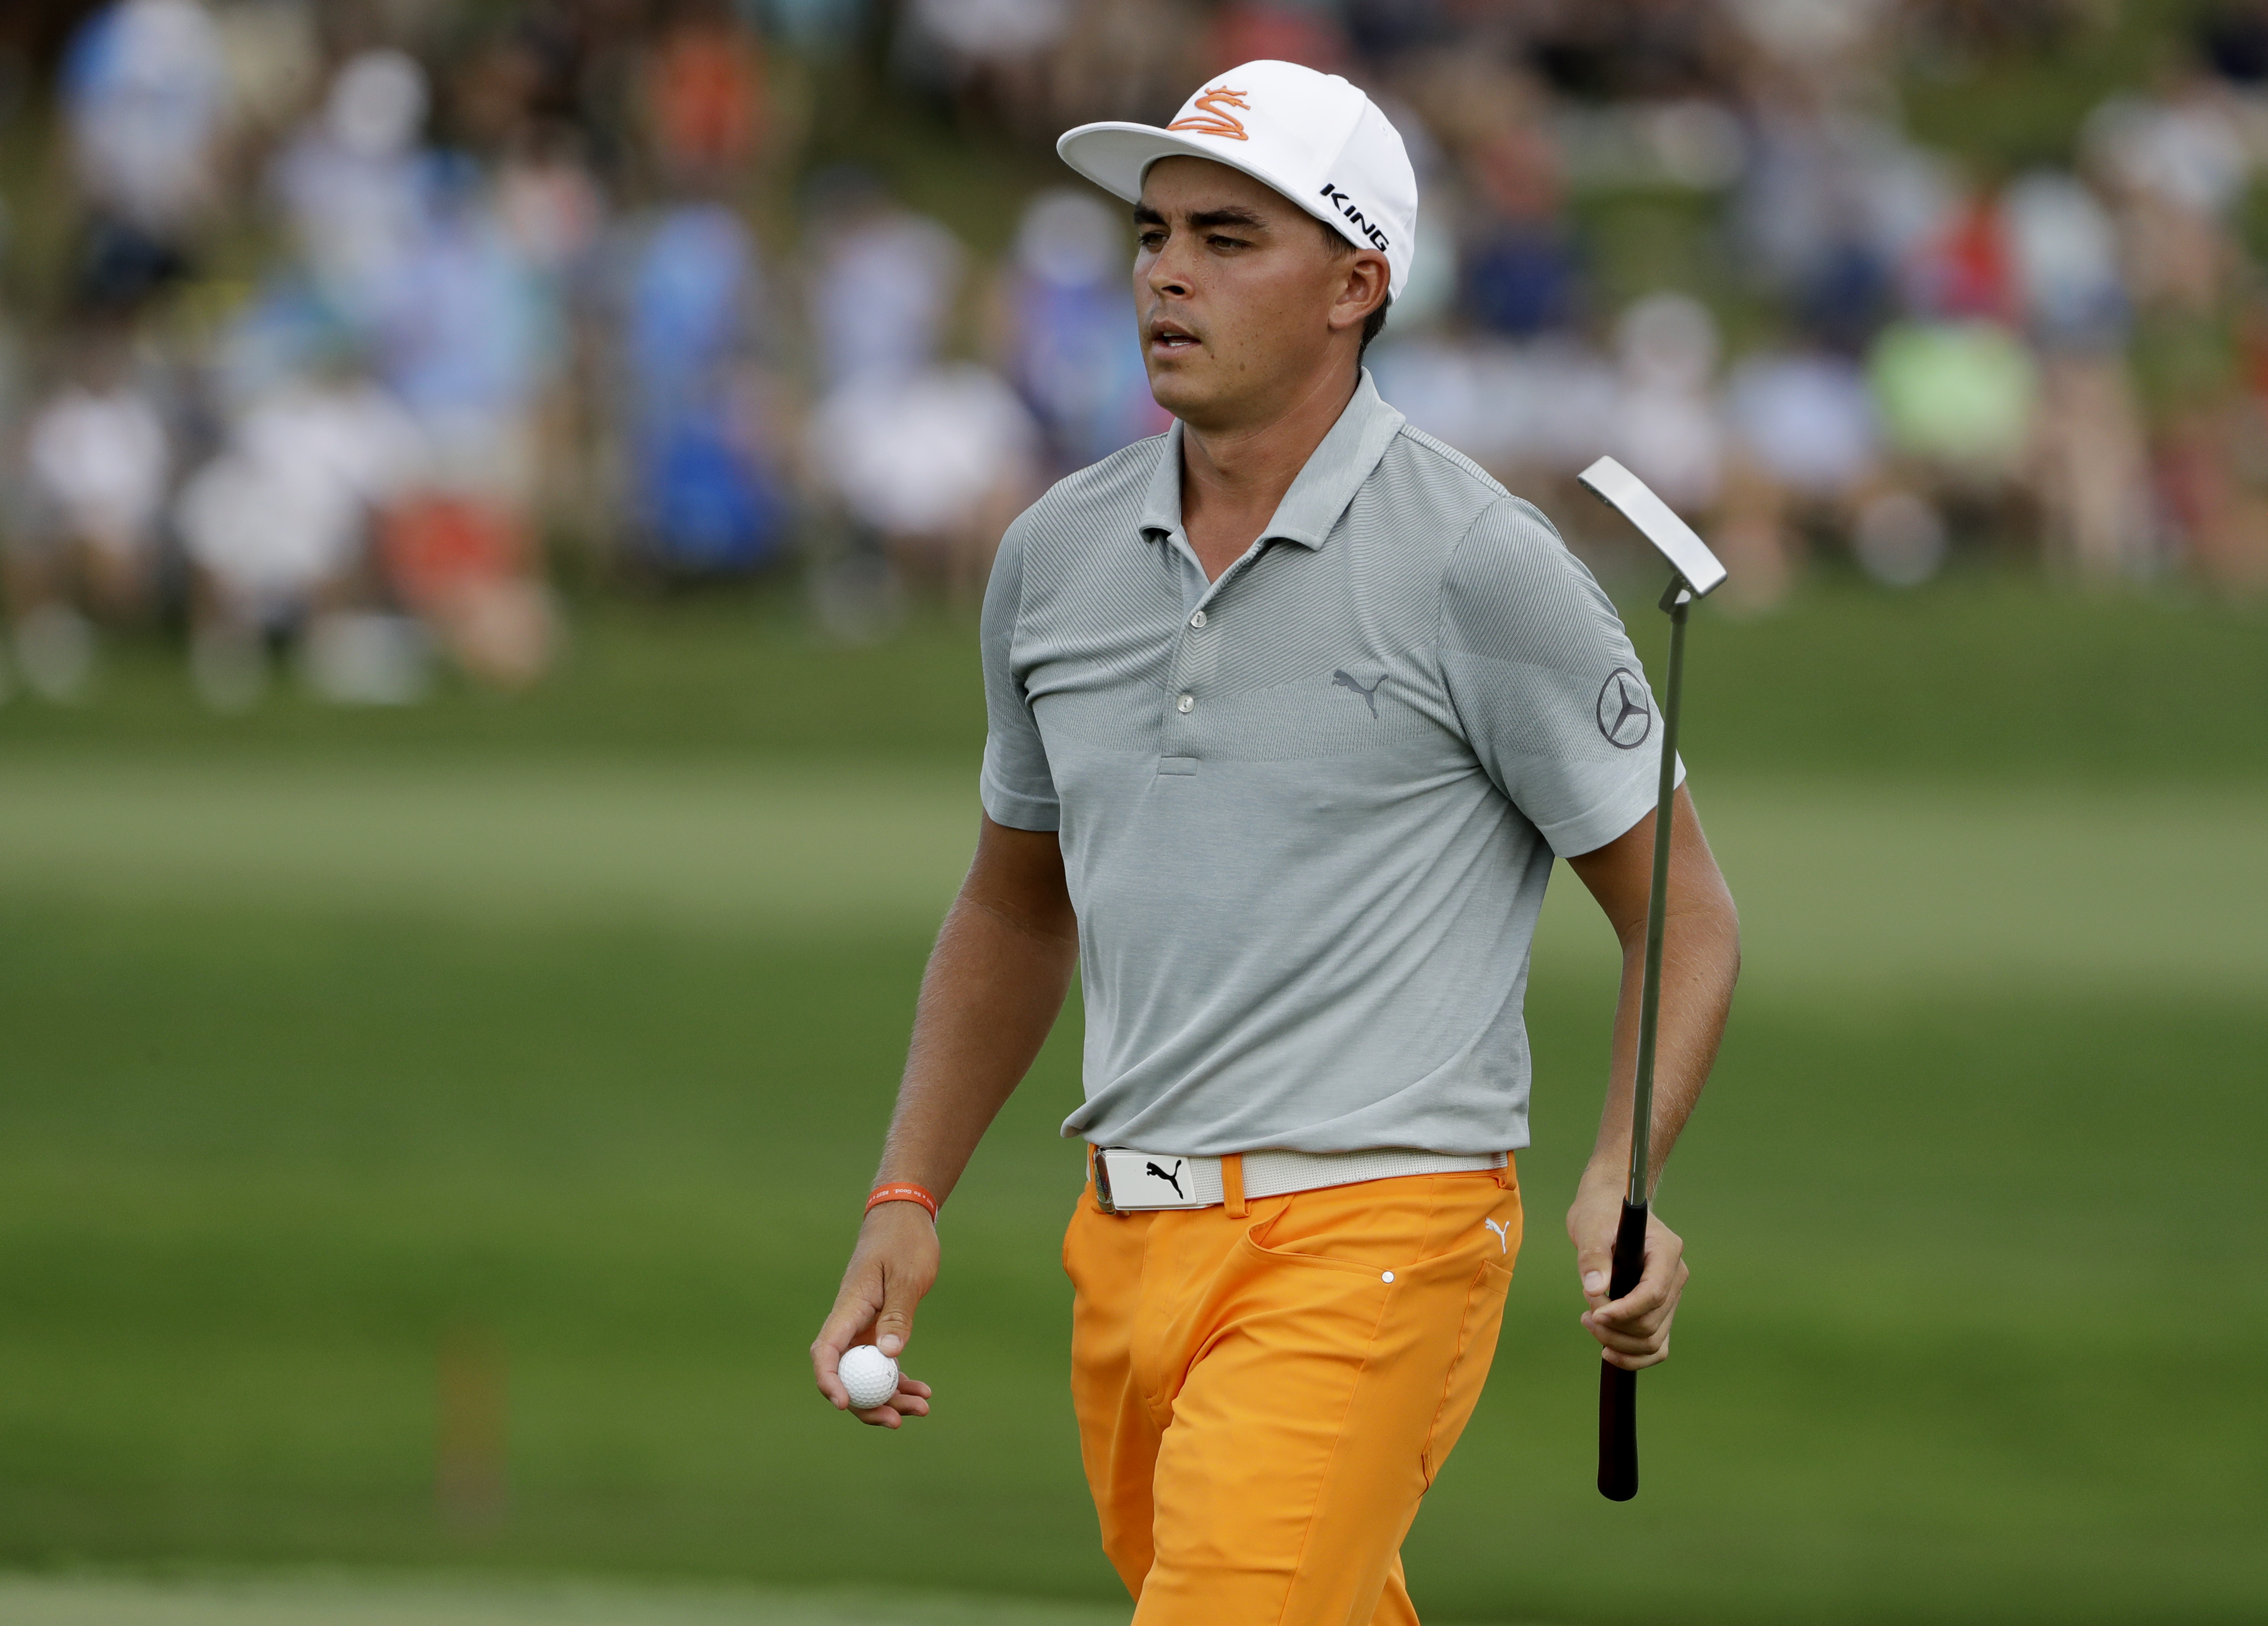 Rickie Fowler finishes the 16th hole during the final round of the PGA Championship golf tournament at the Quail Hollow Club Sunday, Aug. 13, 2017, in Charlotte, N.C. (AP Photo/Chris O'Meara)